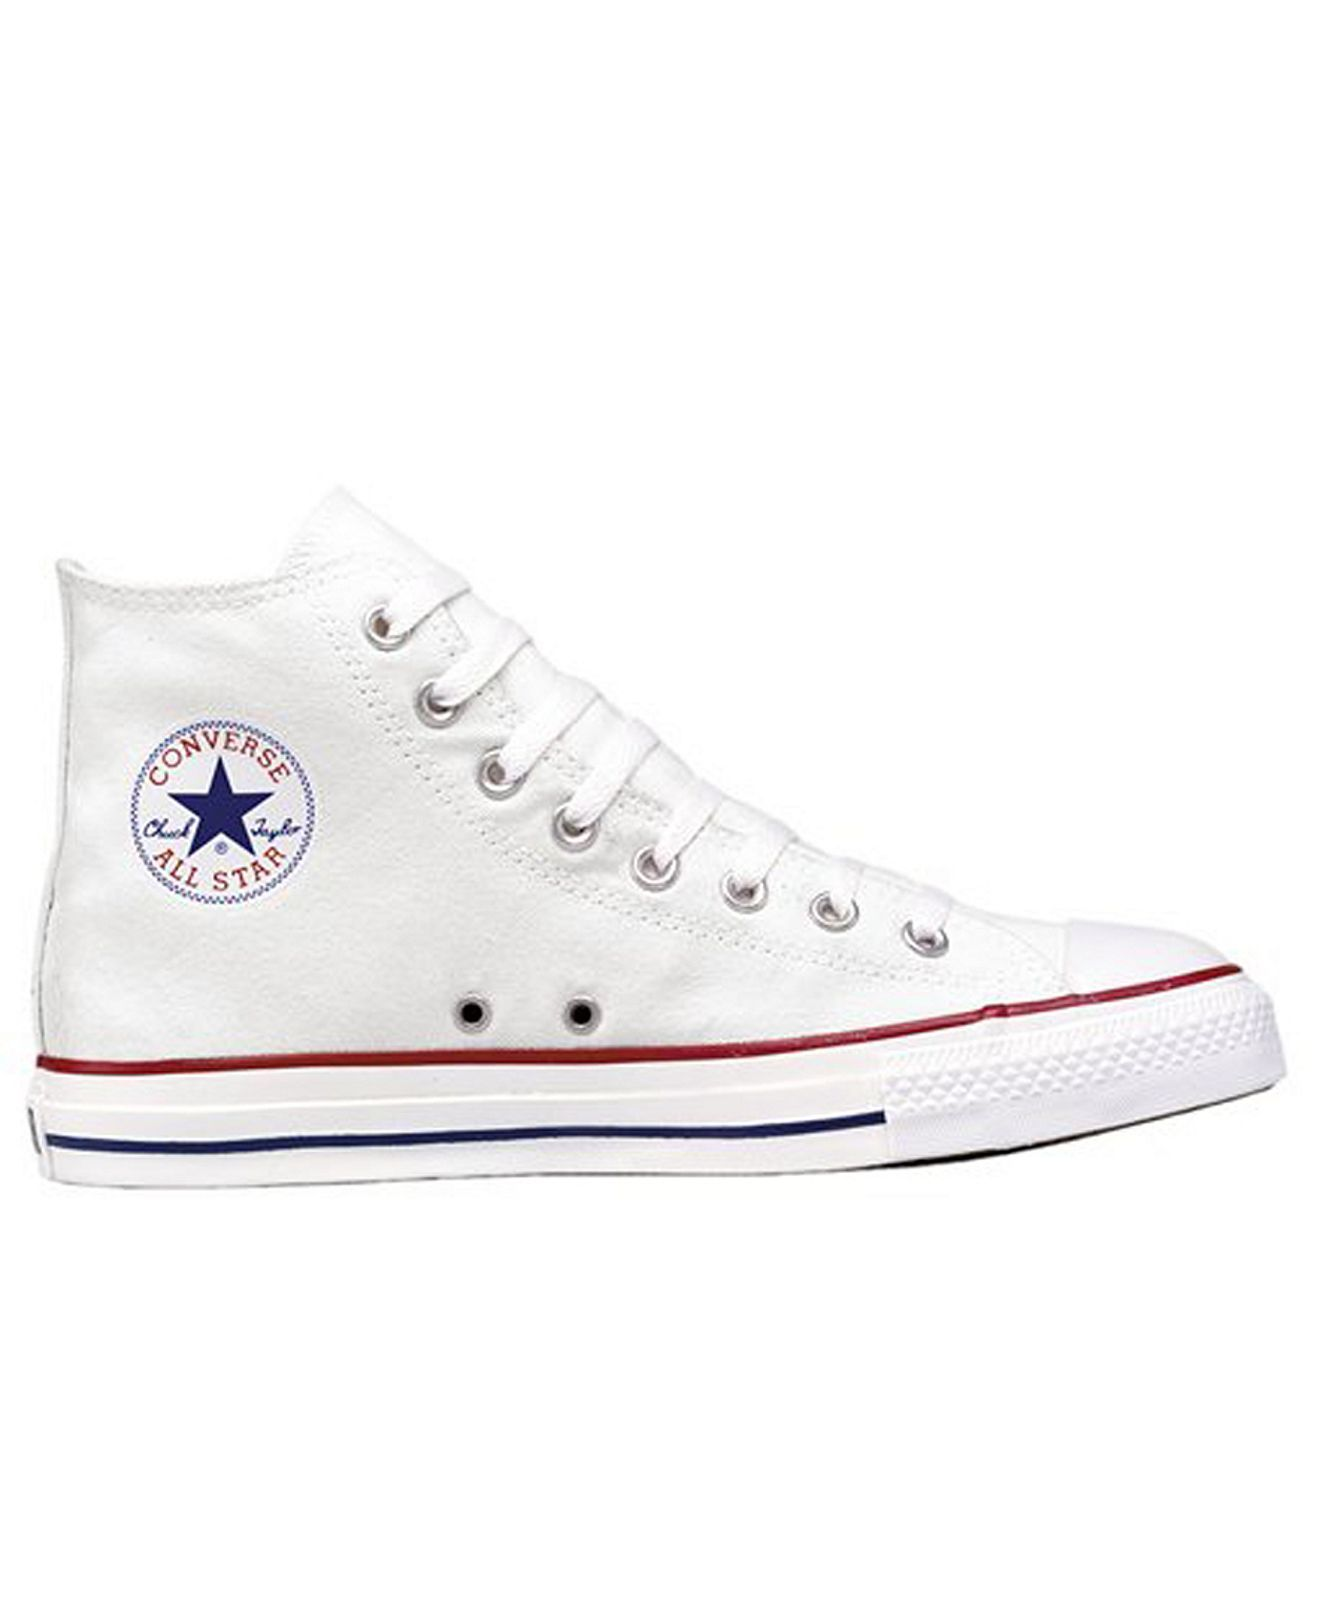 Converse Shoes, Chuck Taylor All Star